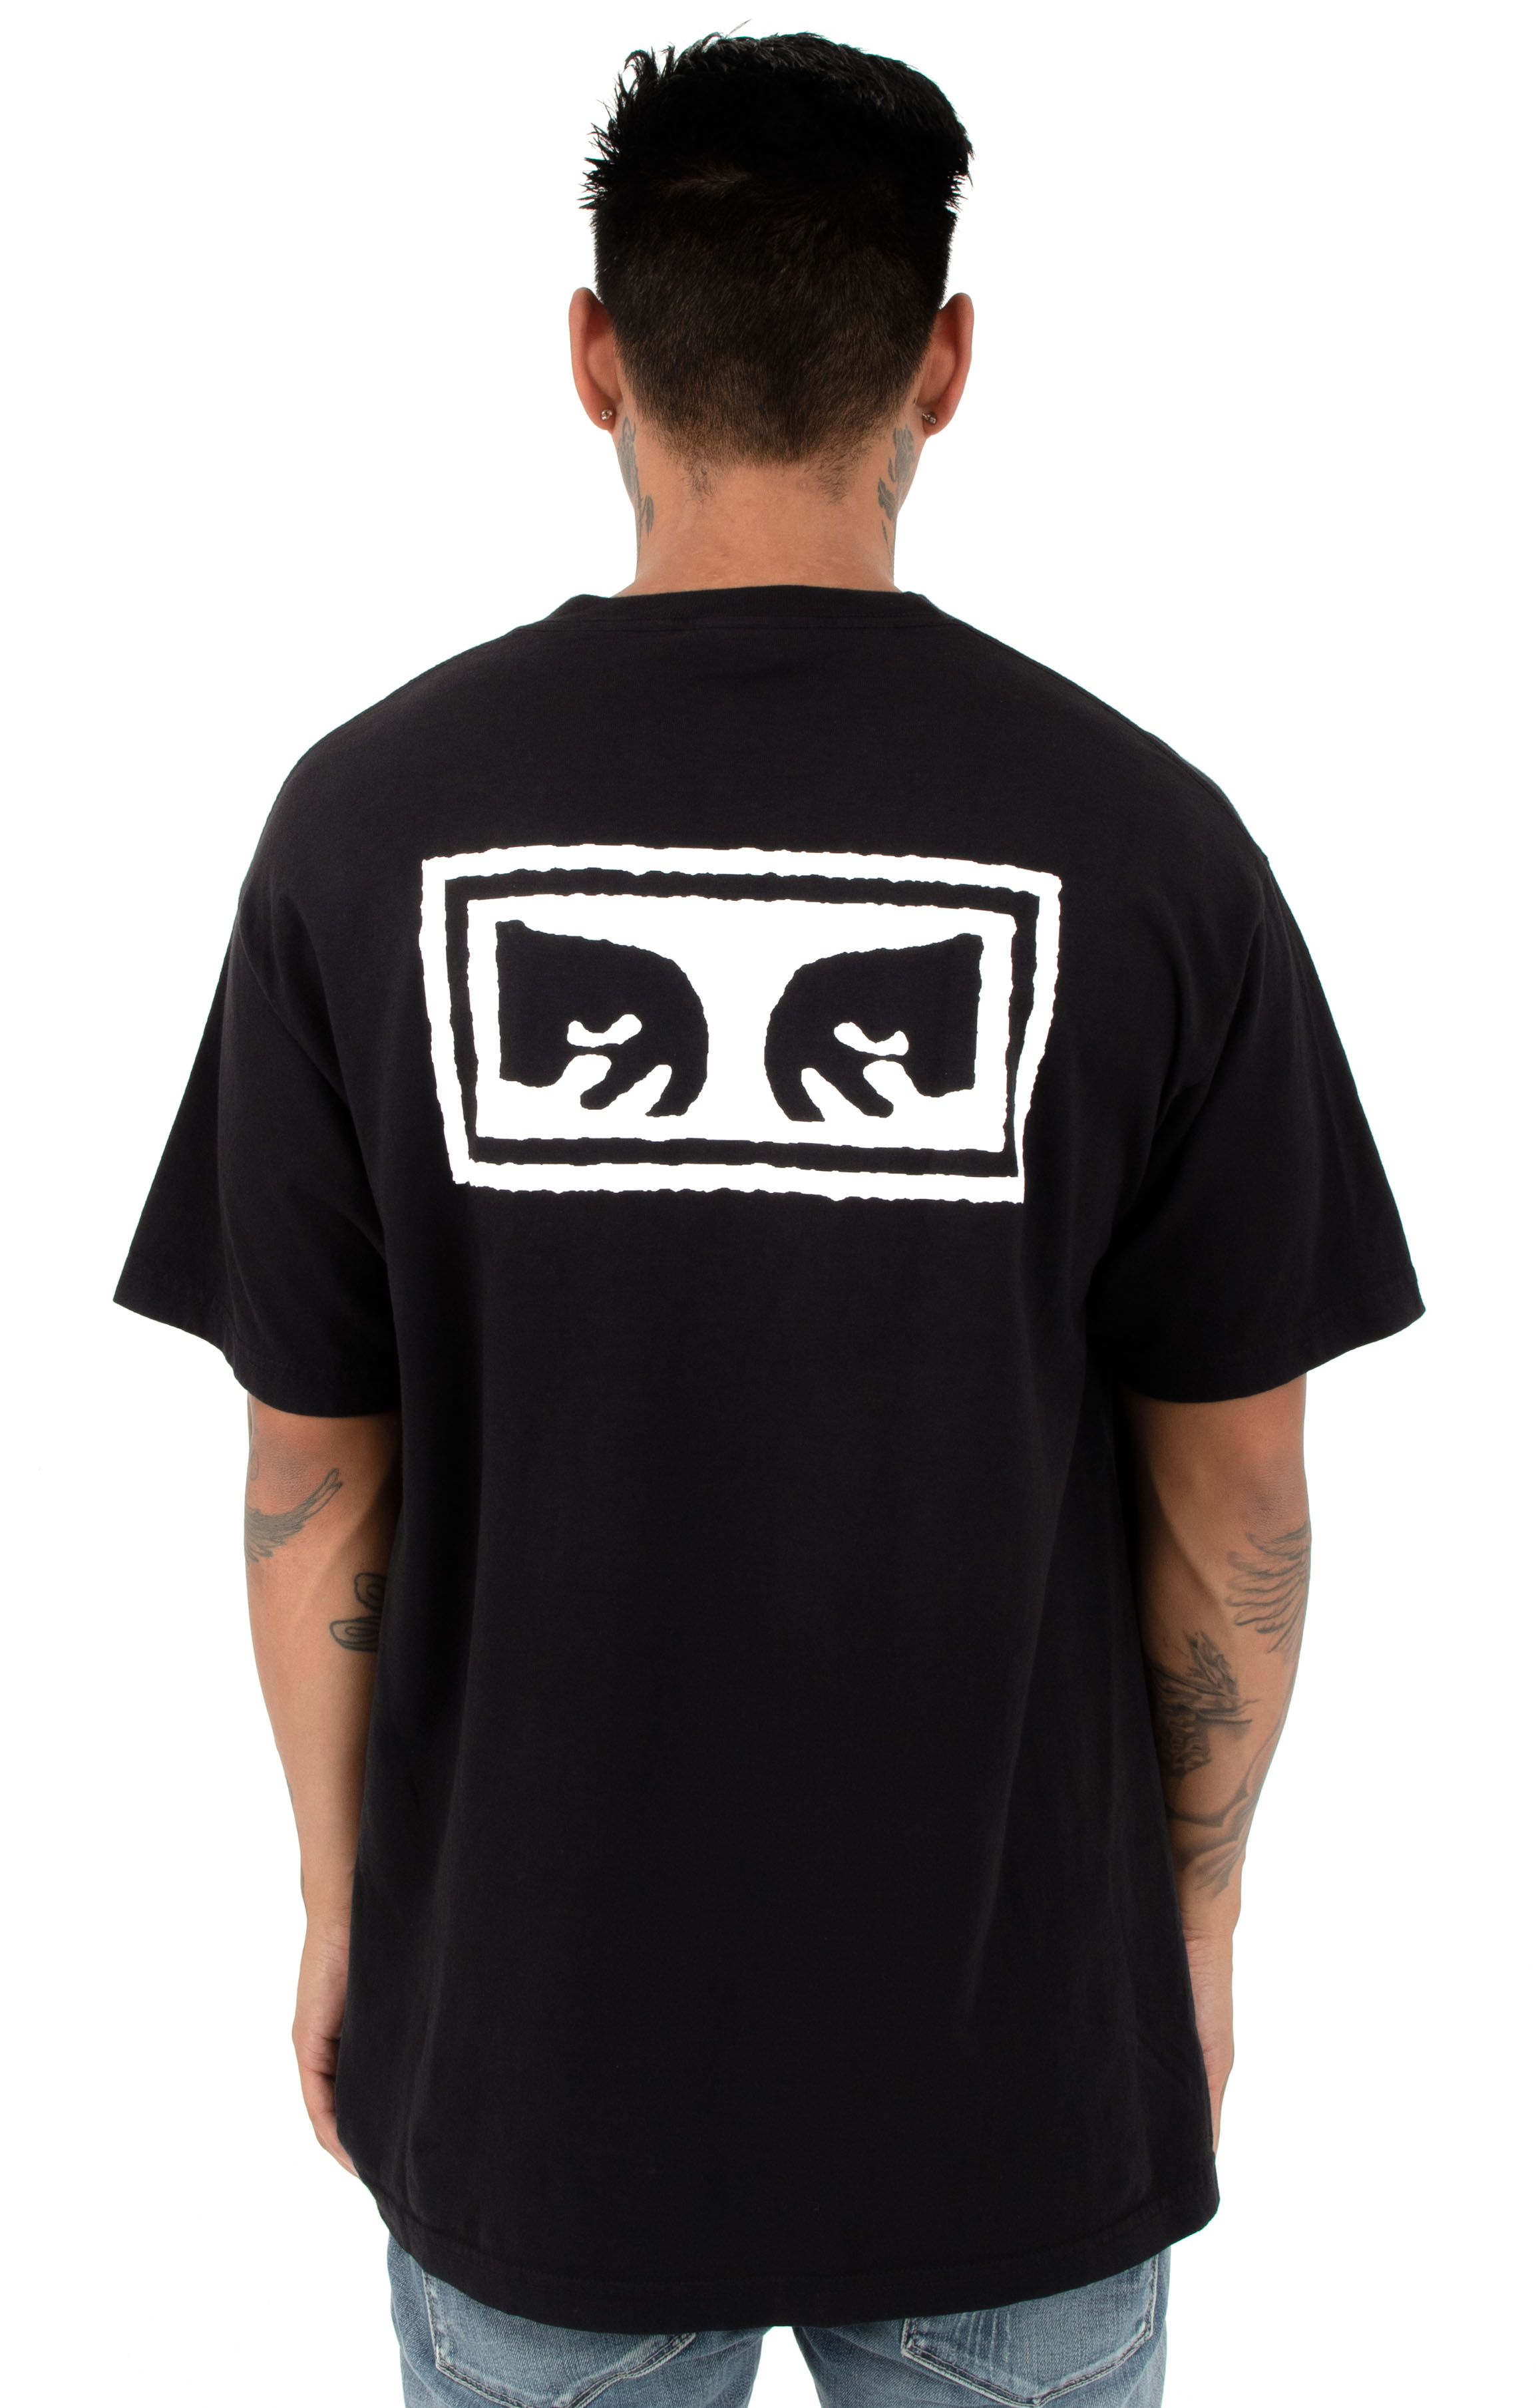 Obey Eyes 3 T-Shirt - Black